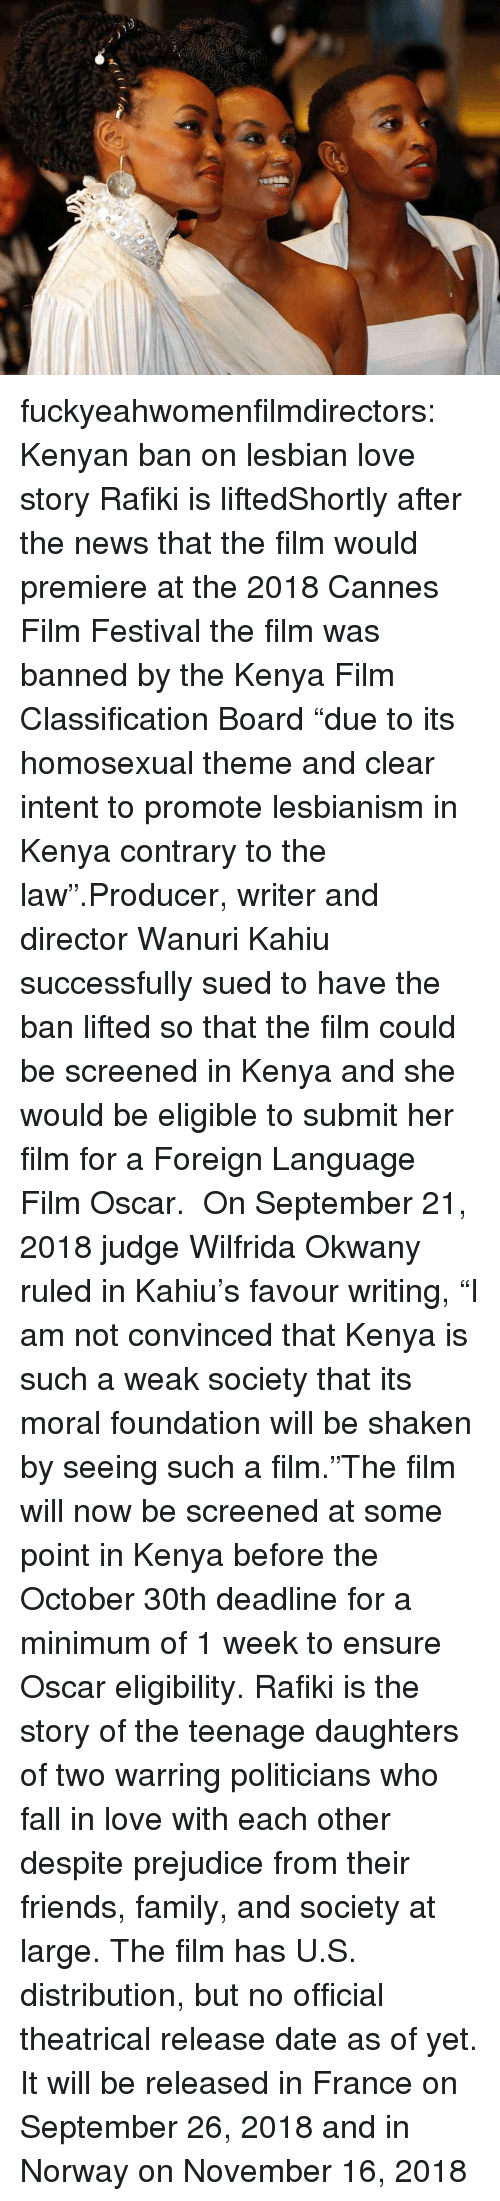 "release date: fuckyeahwomenfilmdirectors:  Kenyan ban on lesbian love story Rafiki is liftedShortly after the news that the film would premiere at the 2018 Cannes Film Festival the film was banned by the Kenya Film Classification Board ""due to its homosexual theme and clear intent to promote lesbianism in Kenya contrary to the law"".Producer, writer and director Wanuri Kahiu successfully sued to have the ban lifted so that the film could be screened in Kenya and she would be eligible to submit her film for a Foreign Language Film Oscar.  On September 21, 2018 judge Wilfrida Okwany ruled in Kahiu's favour writing, ""I am not convinced that Kenya is such a weak society that its moral foundation will be shaken by seeing such a film.""The film will now be screened at some point in Kenya before the October 30th deadline for a minimum of 1 week to ensure Oscar eligibility. Rafiki is the story of the teenage daughters of two warring politicians who fall in love with each other despite prejudice from their friends, family, and society at large. The film has U.S. distribution, but no official theatrical release date as of yet. It will be released in France on September 26, 2018 and in Norway on November 16, 2018"